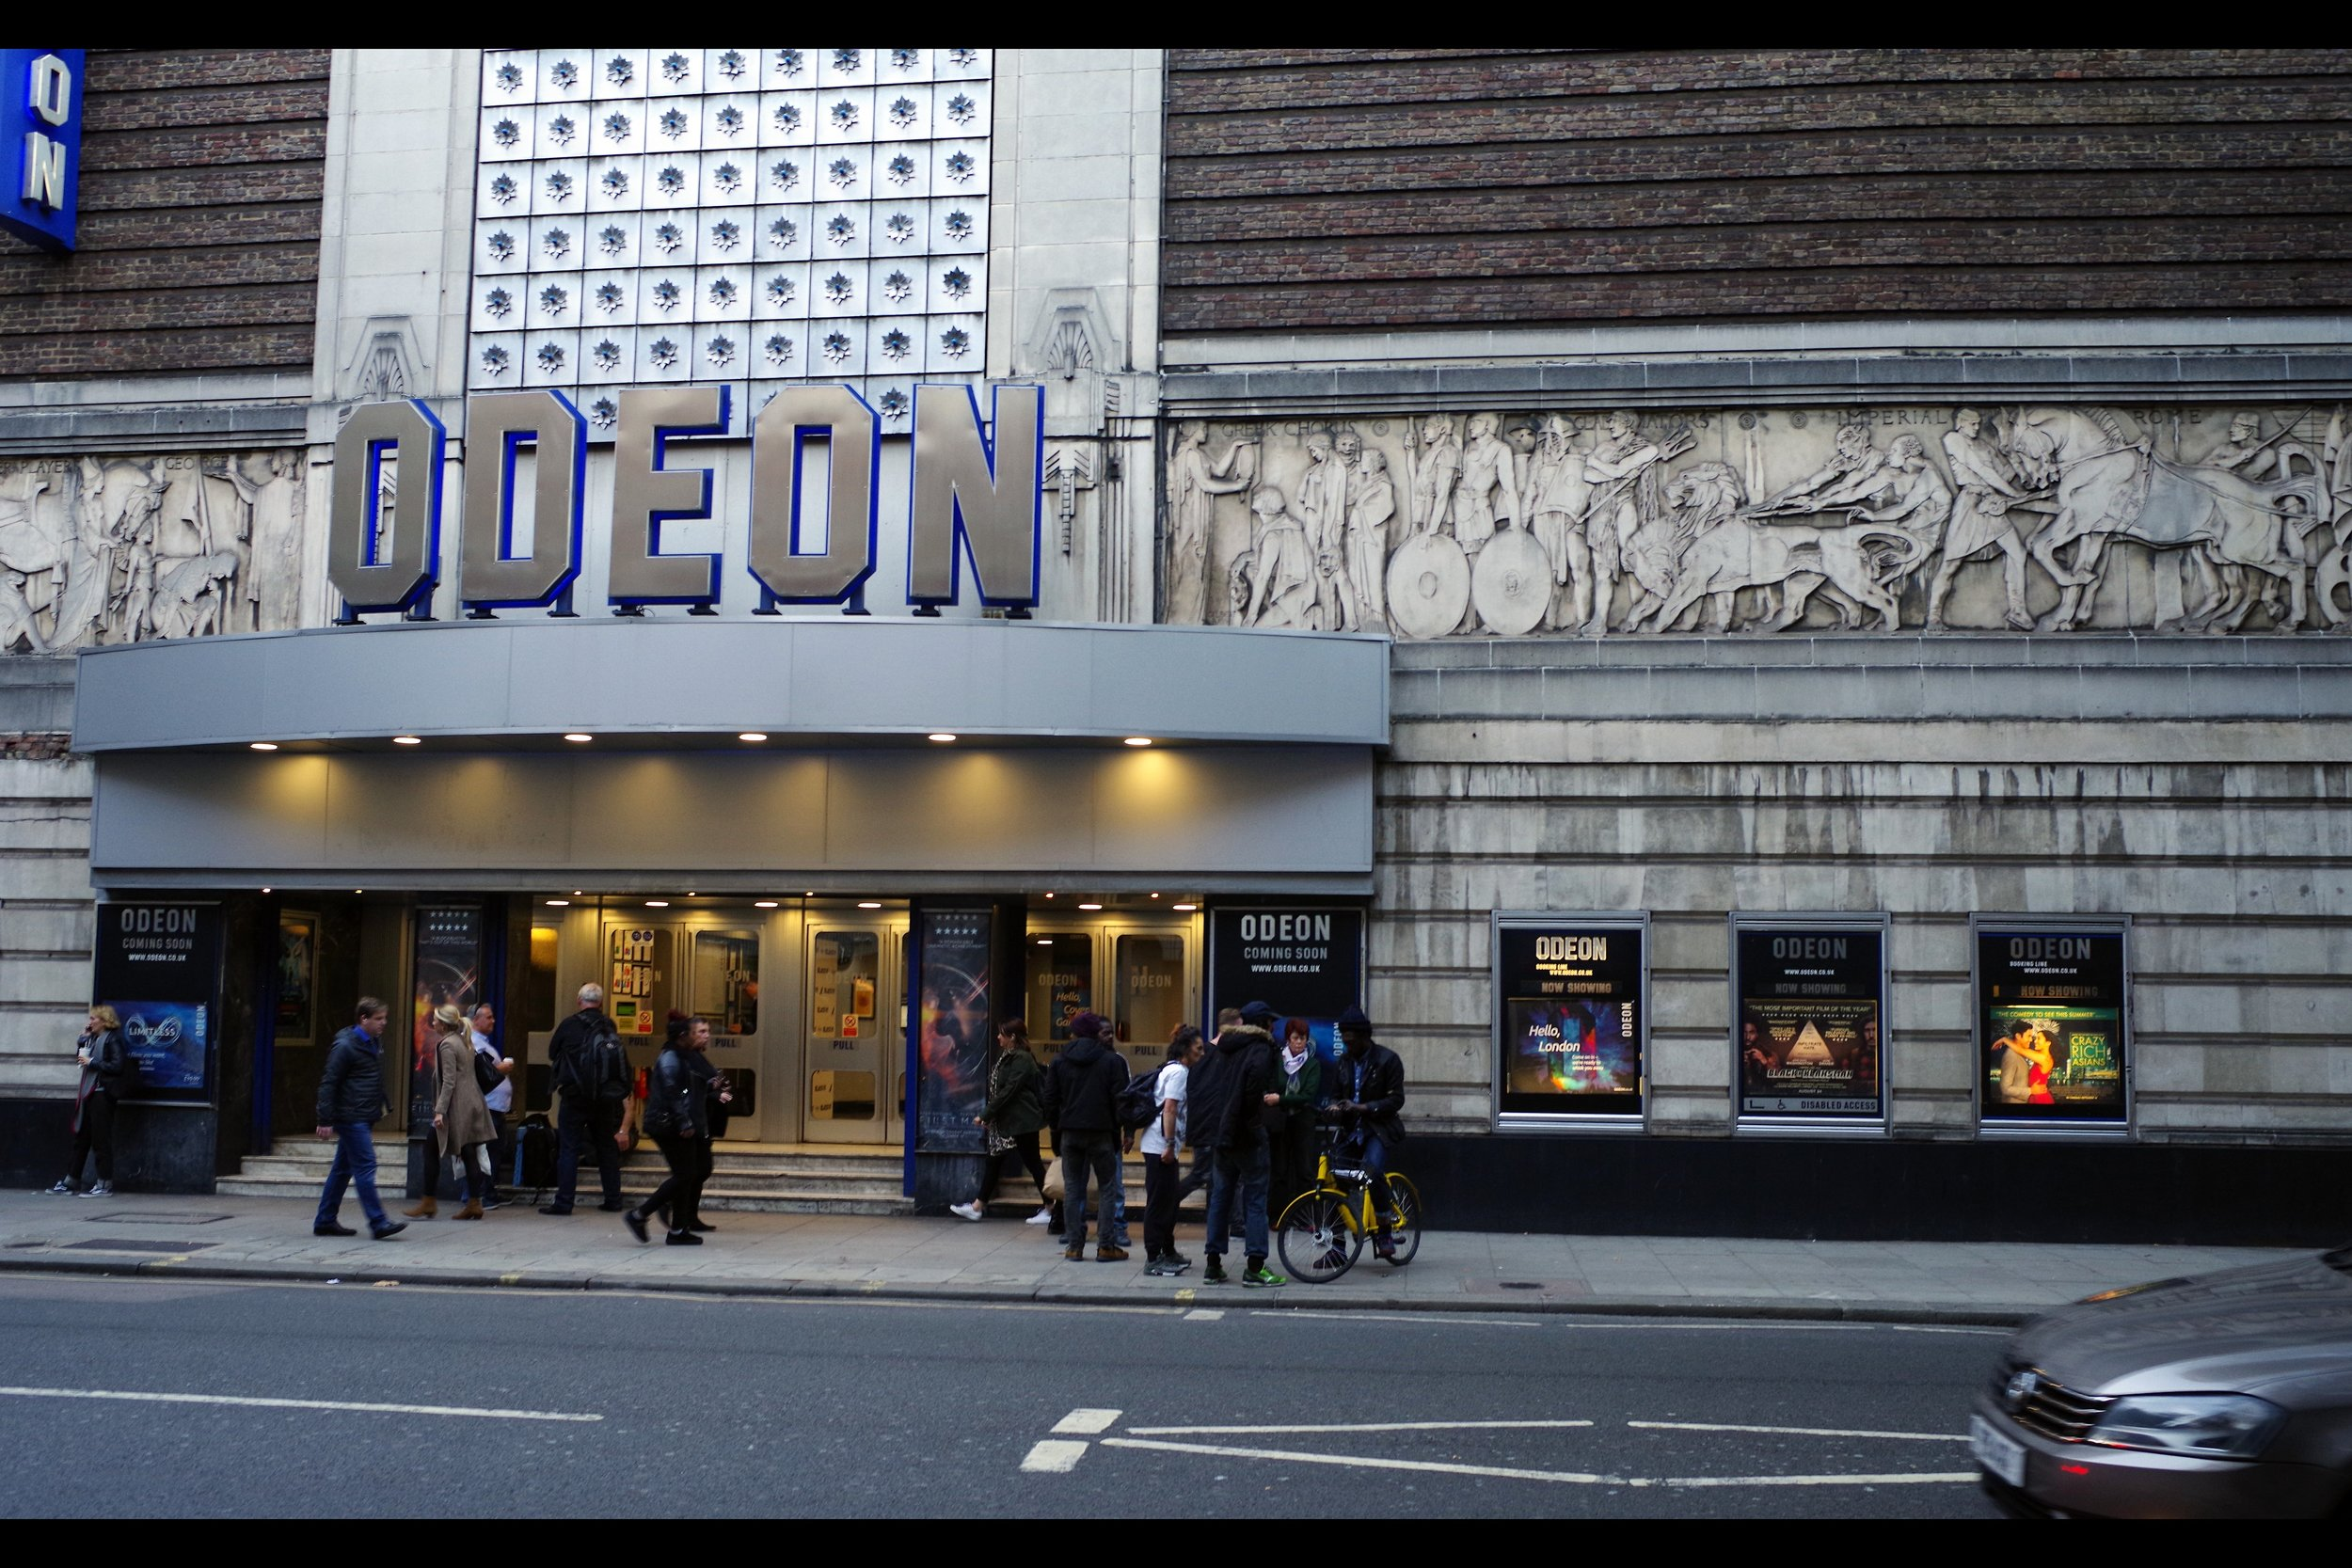 It's the Odeon Covent Garden. It's slightly closer to my office than Leicester Square is, and I already have a wristband for the pen of my choice for tomorrow's (apparently) gargantuan Lady Gaga premiere. So…. here it is. Nice frieze.